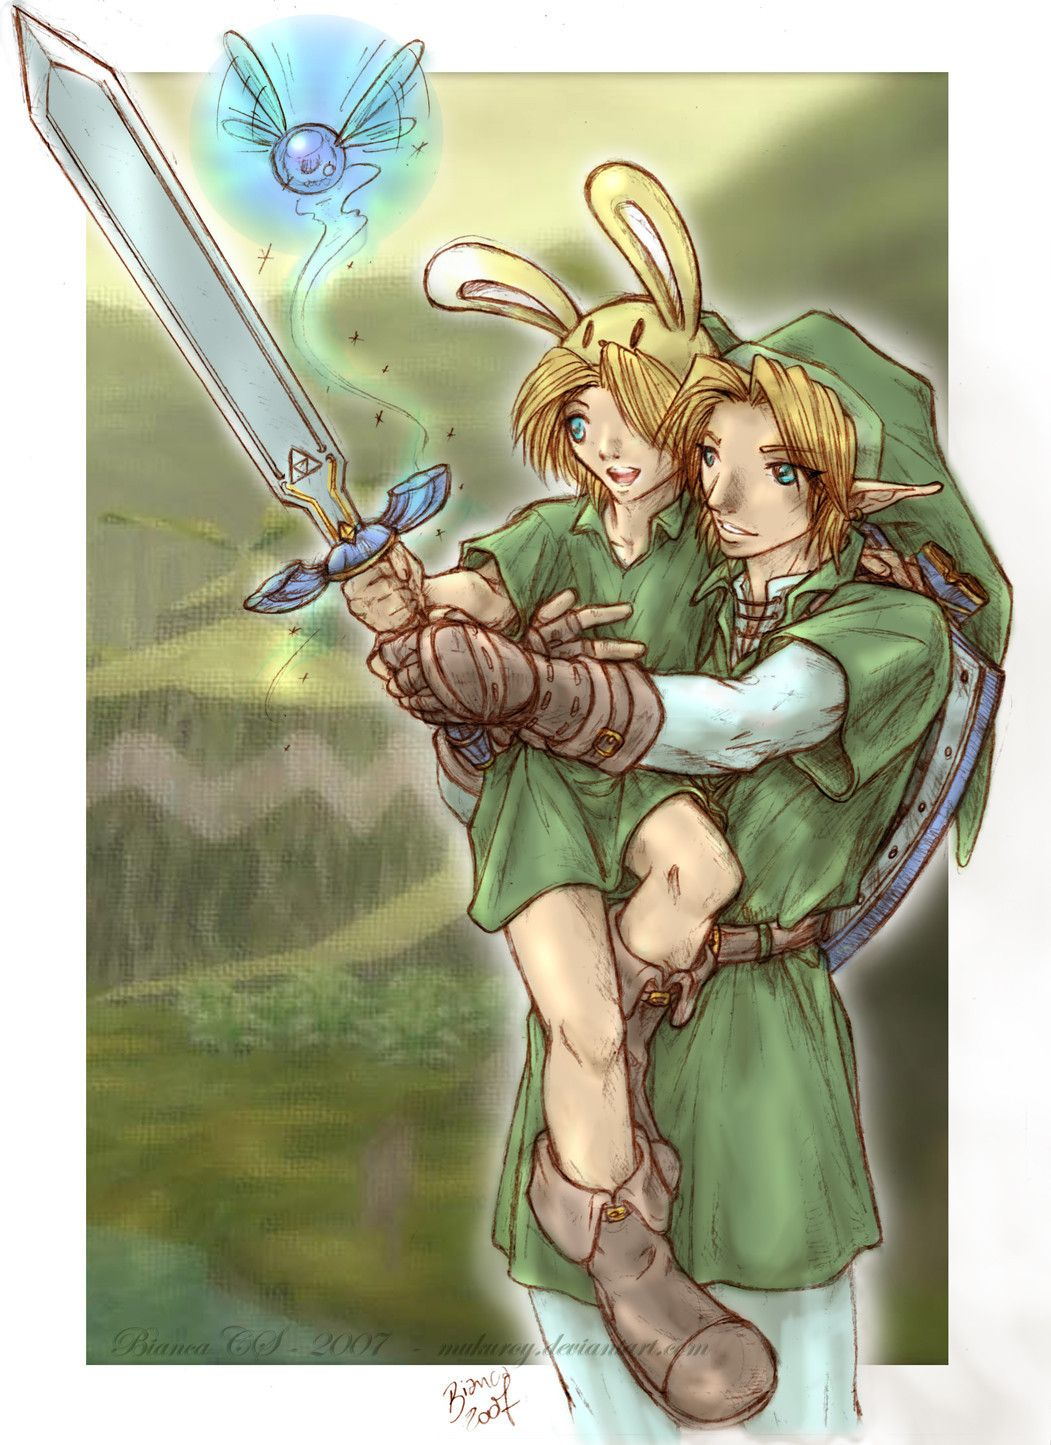 Awe!!!!!!!! Little Link and Big Link!!!!!!!! So cute